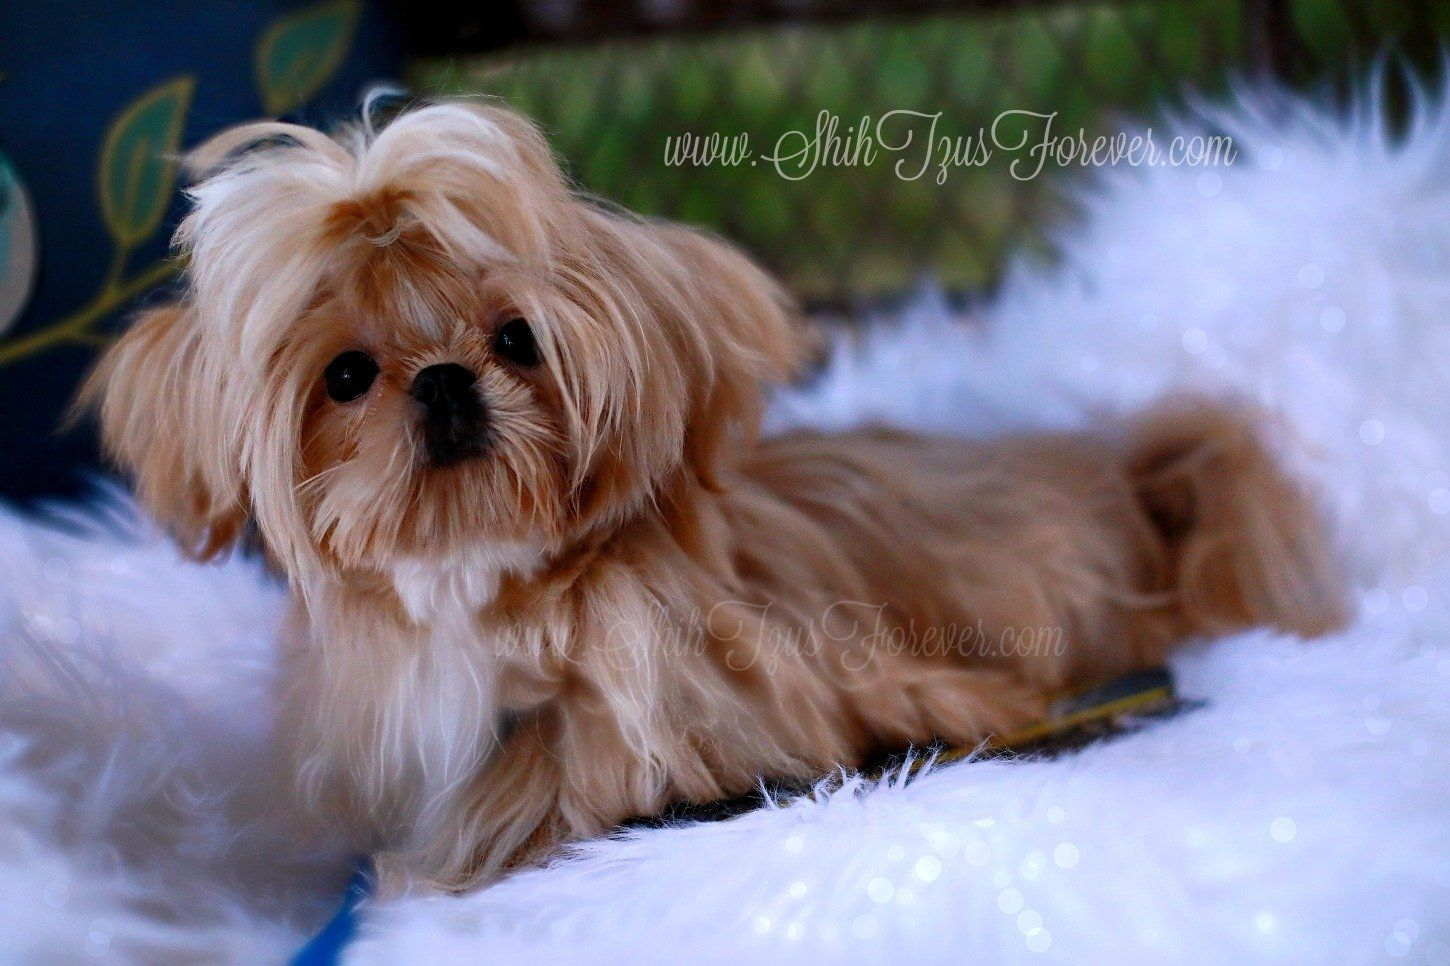 Pin By Norma Landeros On Dream Shih Tzu In 2020 Imperial Shih Tzu Teacup Shih Tzu Shih Tzu